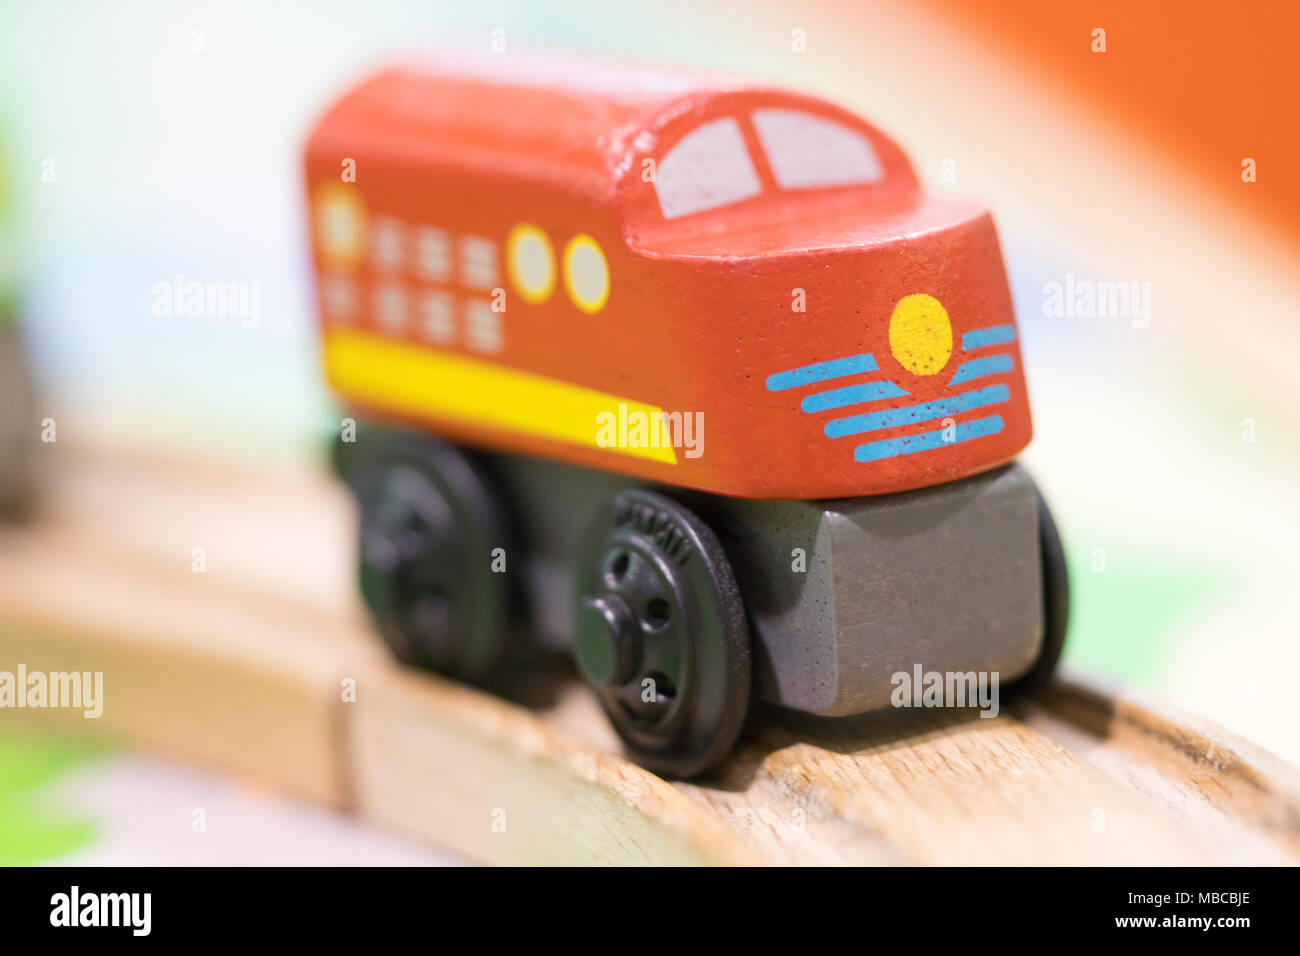 Wooden toy Red train - Toys for kids Play set Educational toys for preschool indoor playground(selective focus) Stock Photo